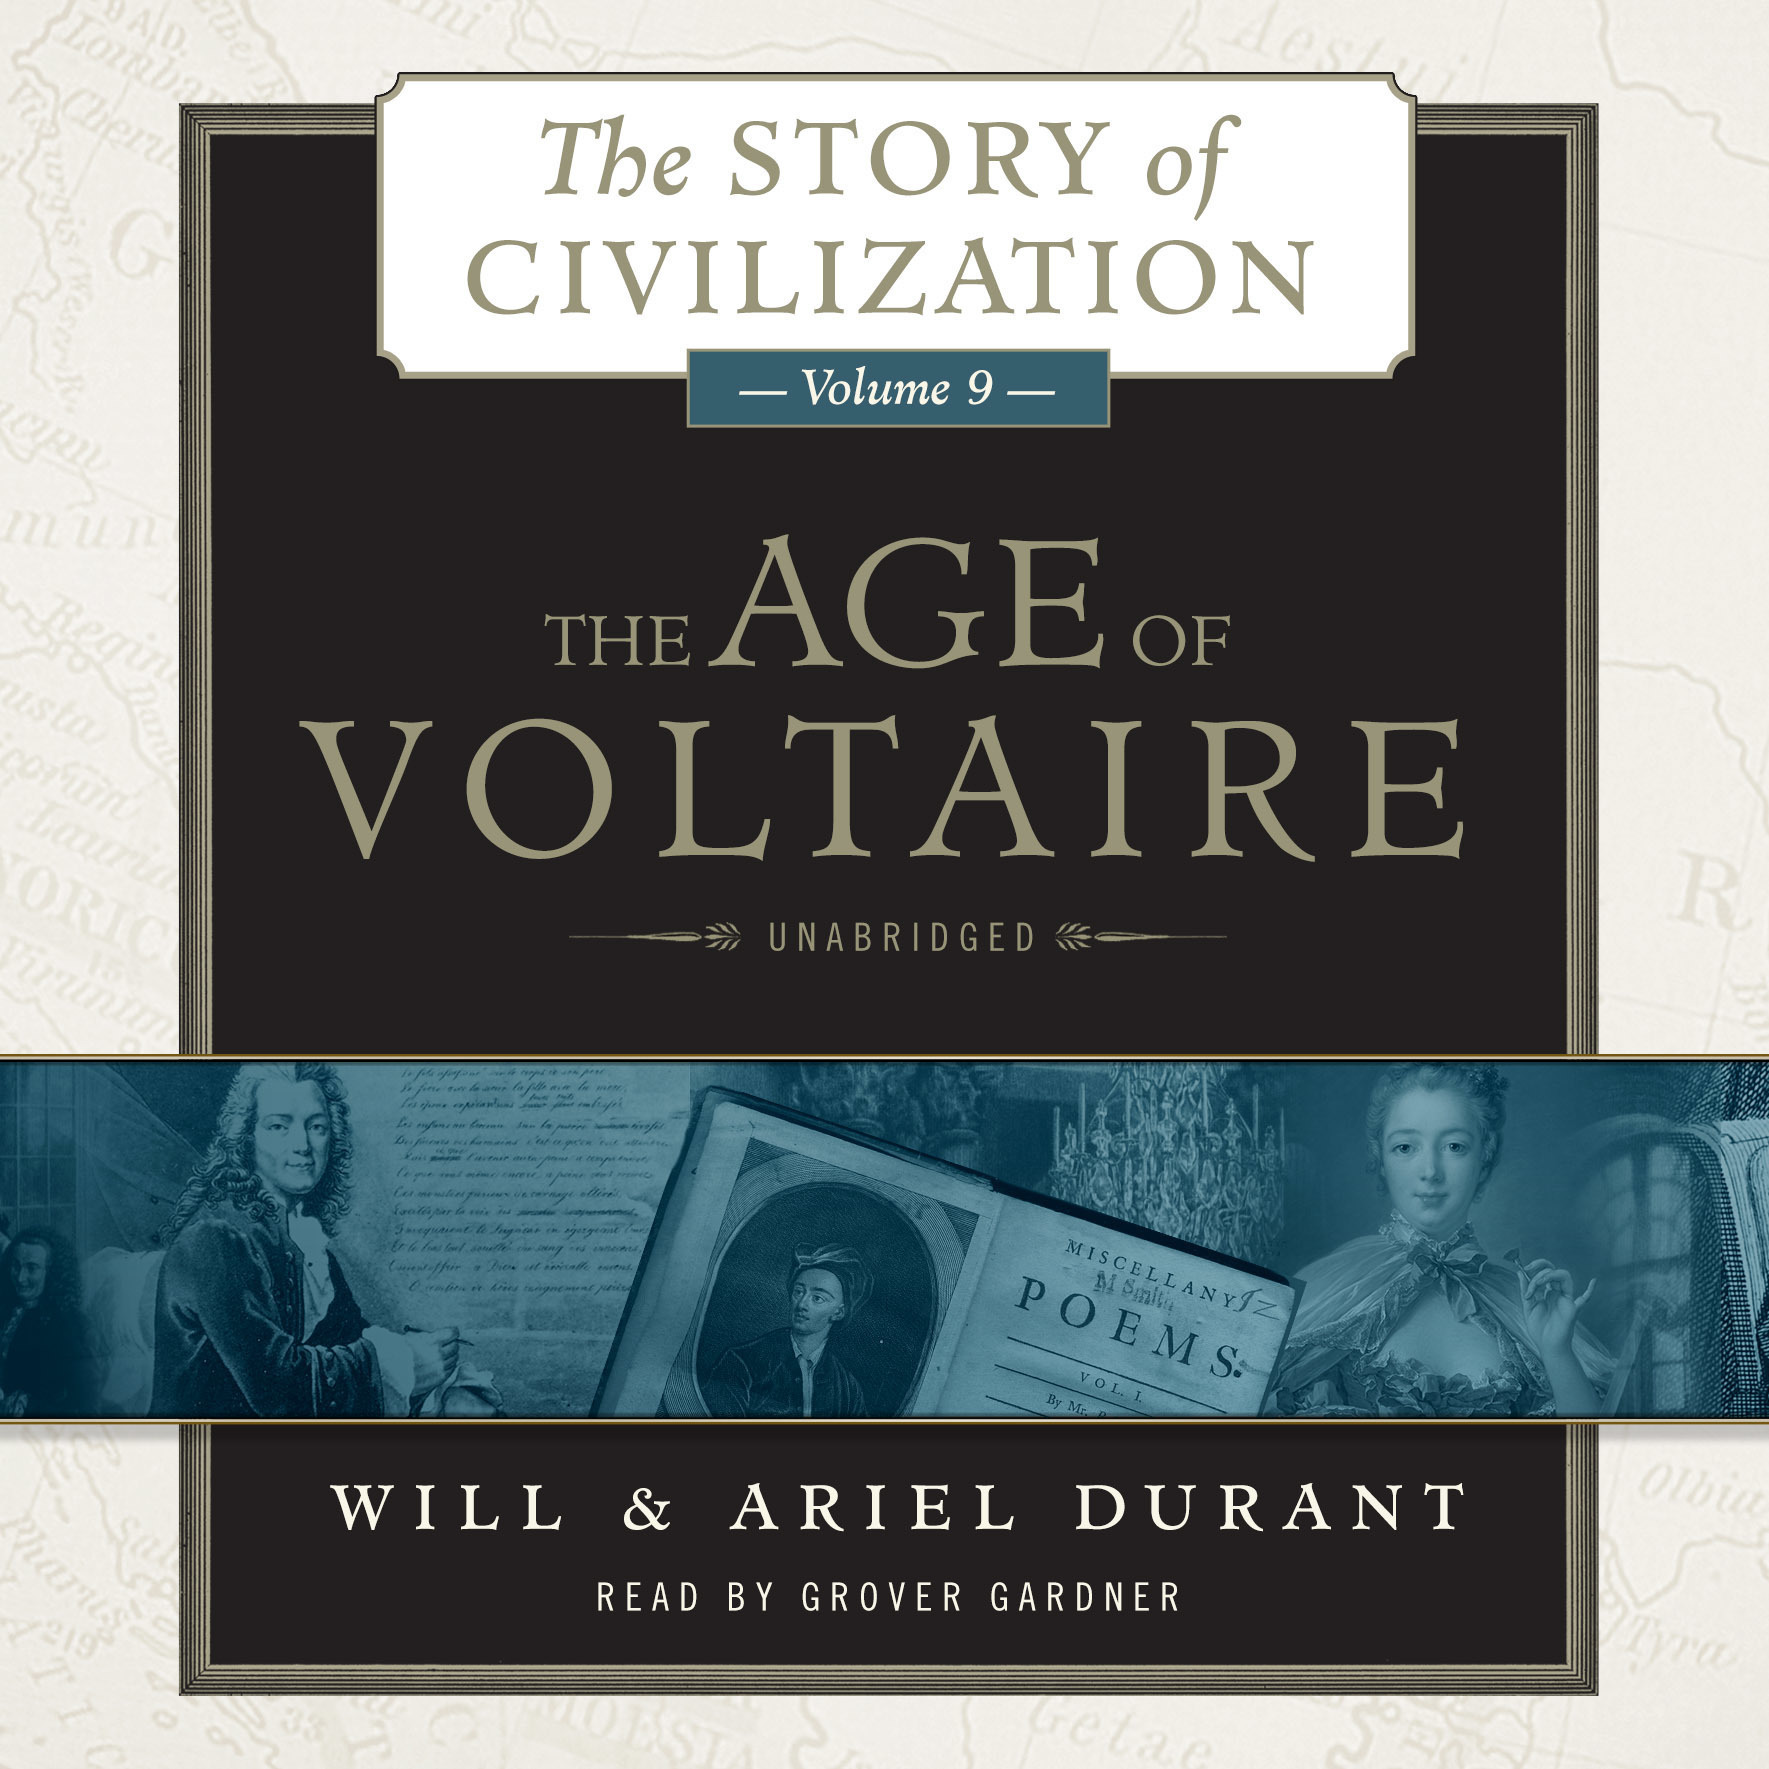 Printable The Age of Voltaire: A History of Civlization in Western Europe from 1715 to 1756, with Special Emphasis on the Conflict between Religion and Philosophy Audiobook Cover Art